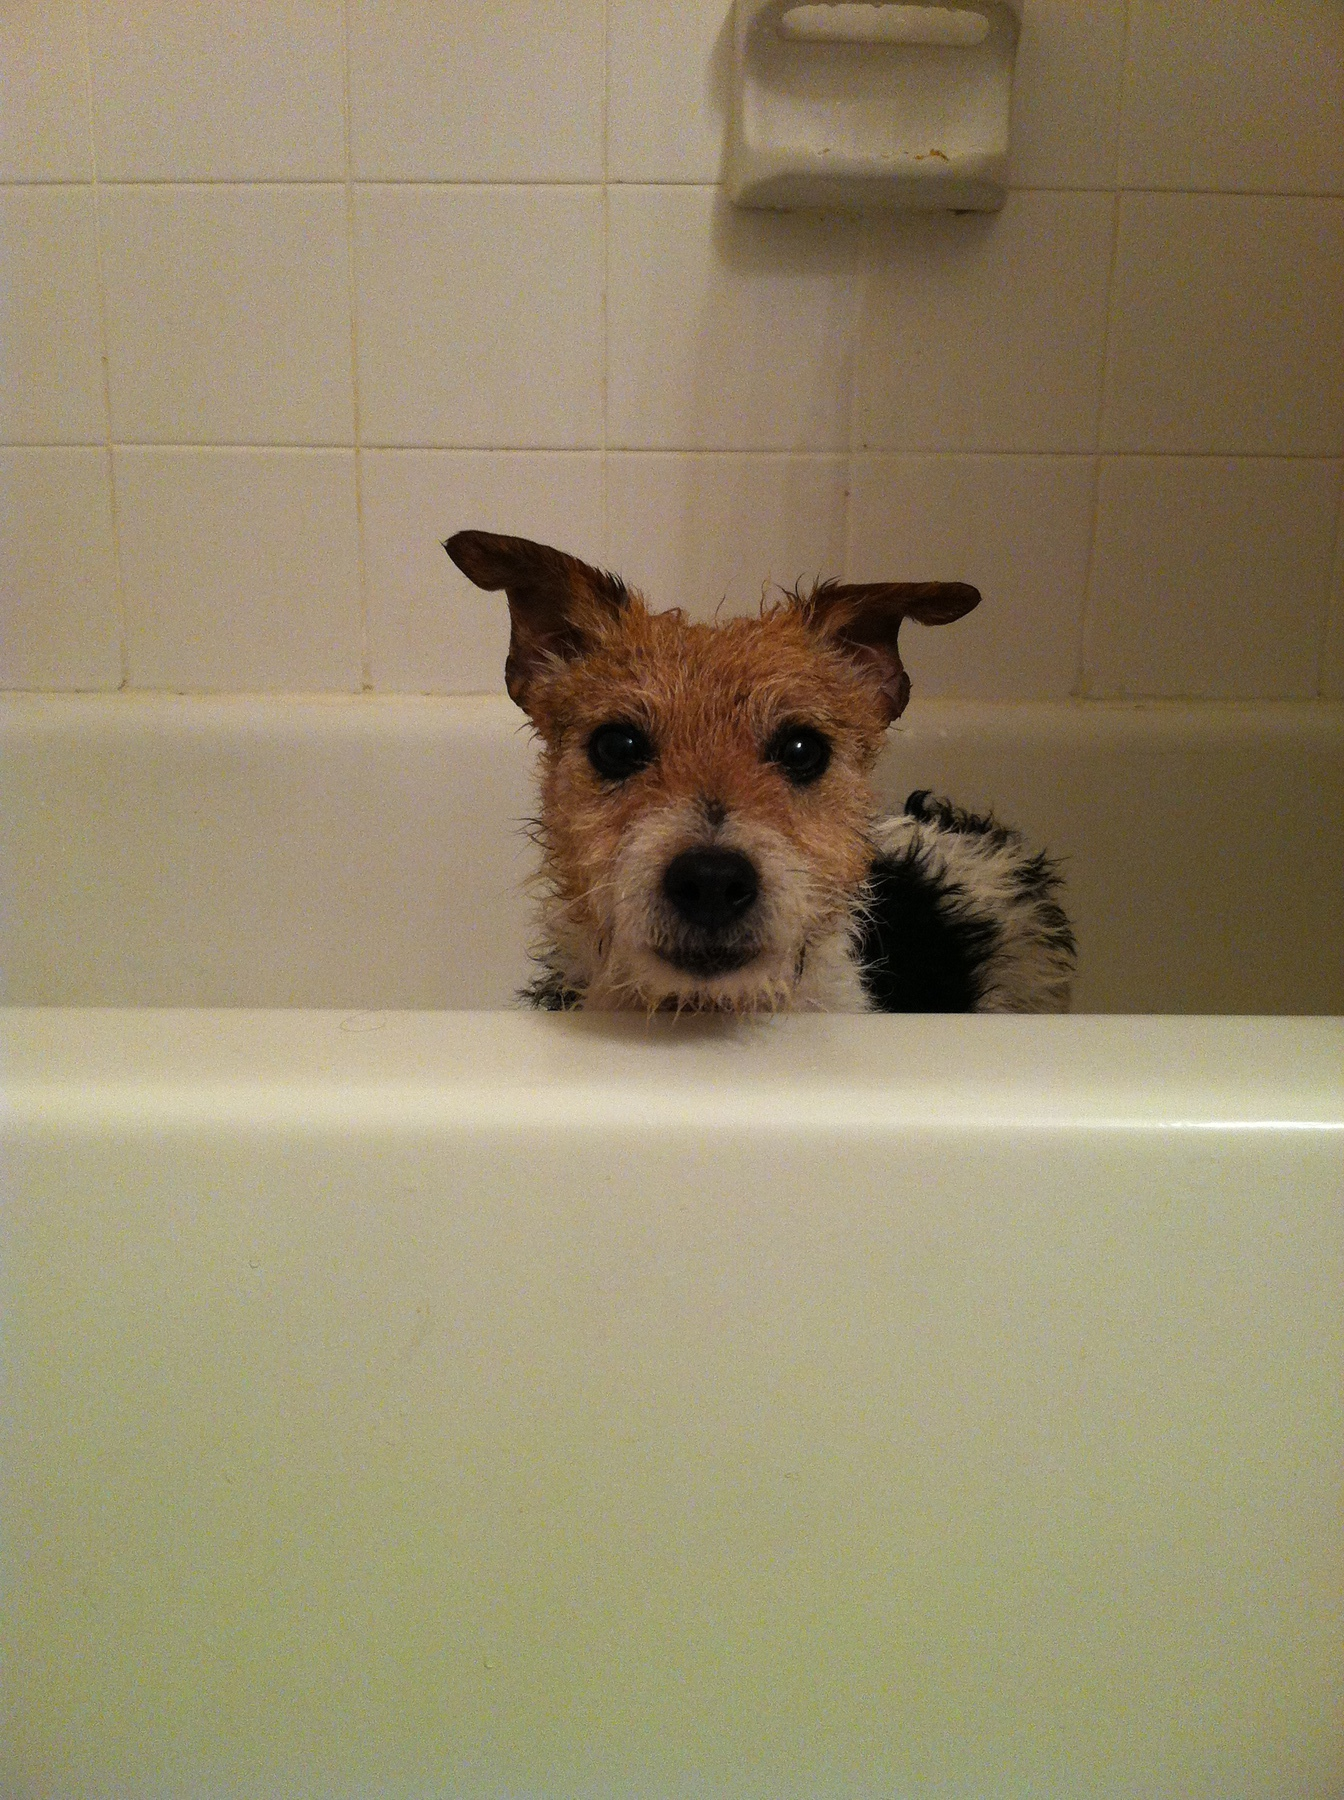 Wet dog in a bathtub peaking over the edge and looking at the viewer